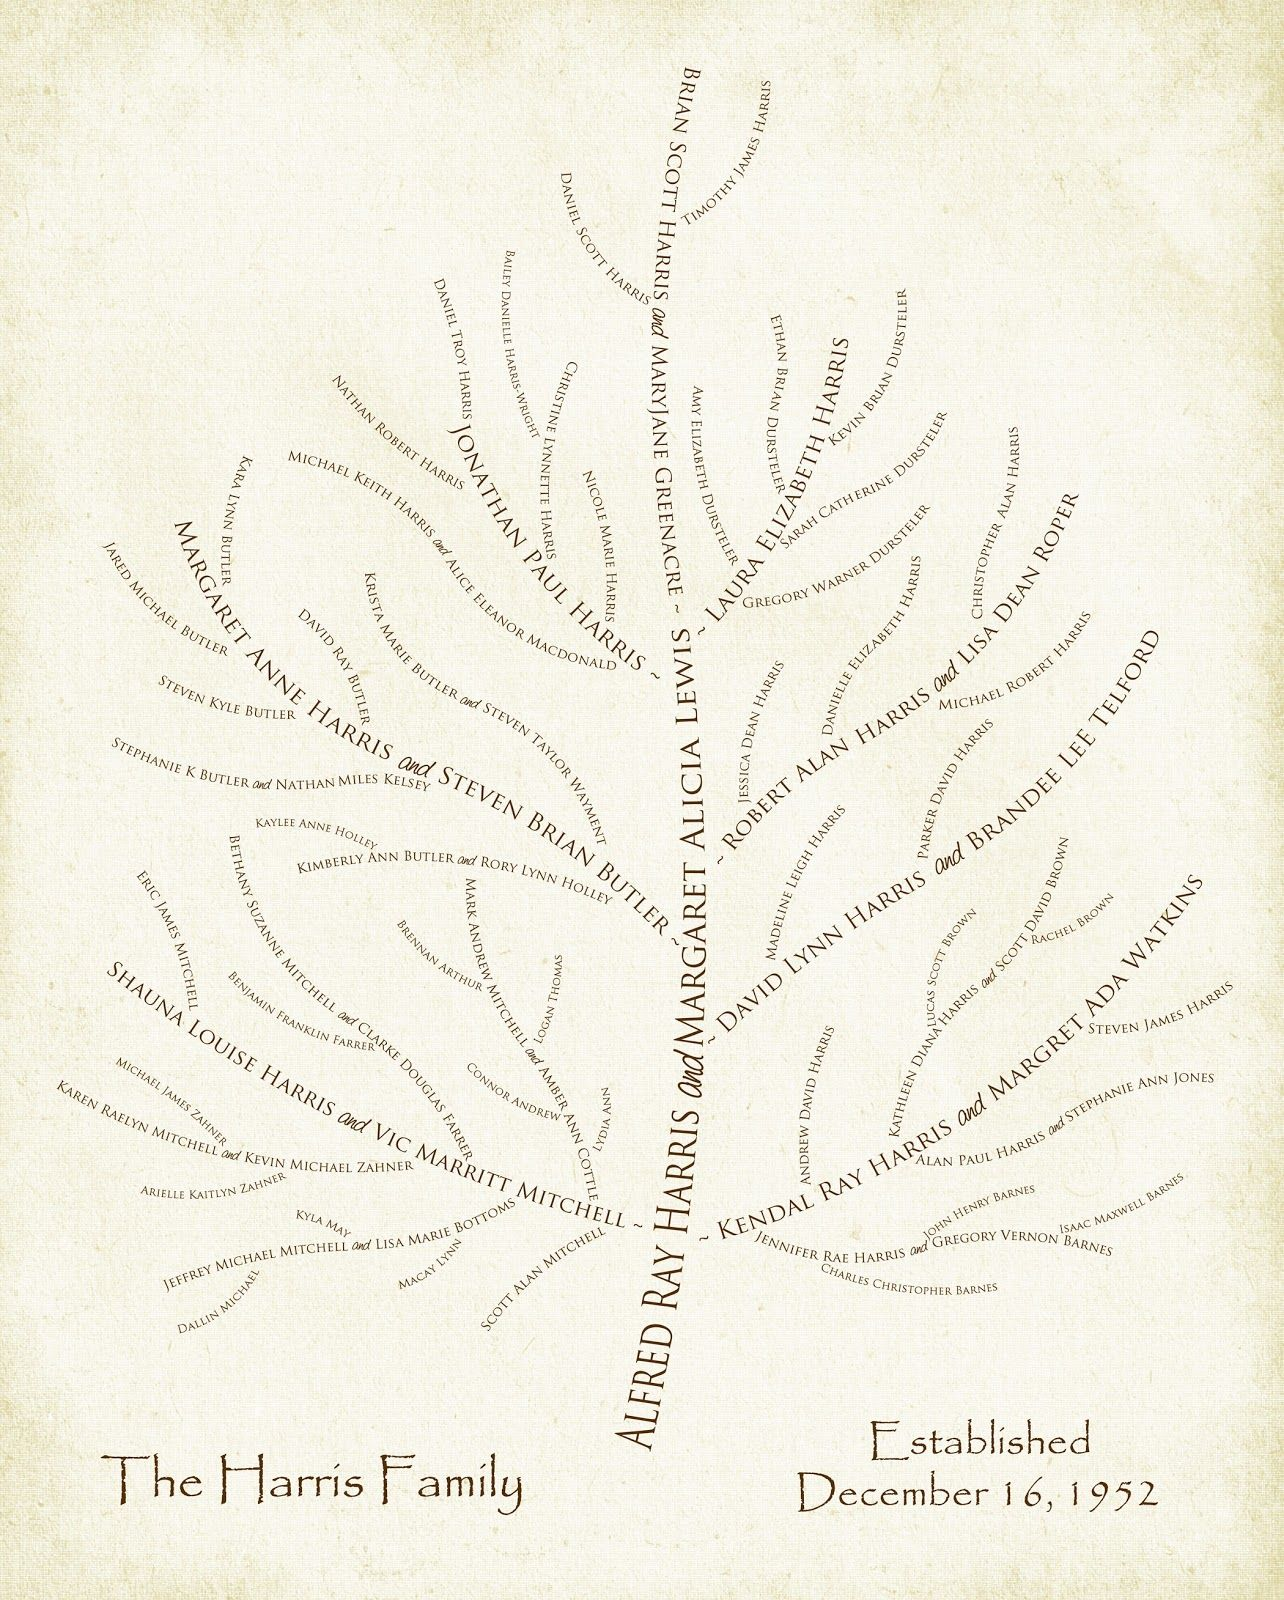 Branch Family Tree Template Create And Own Your Own Genealogy Data